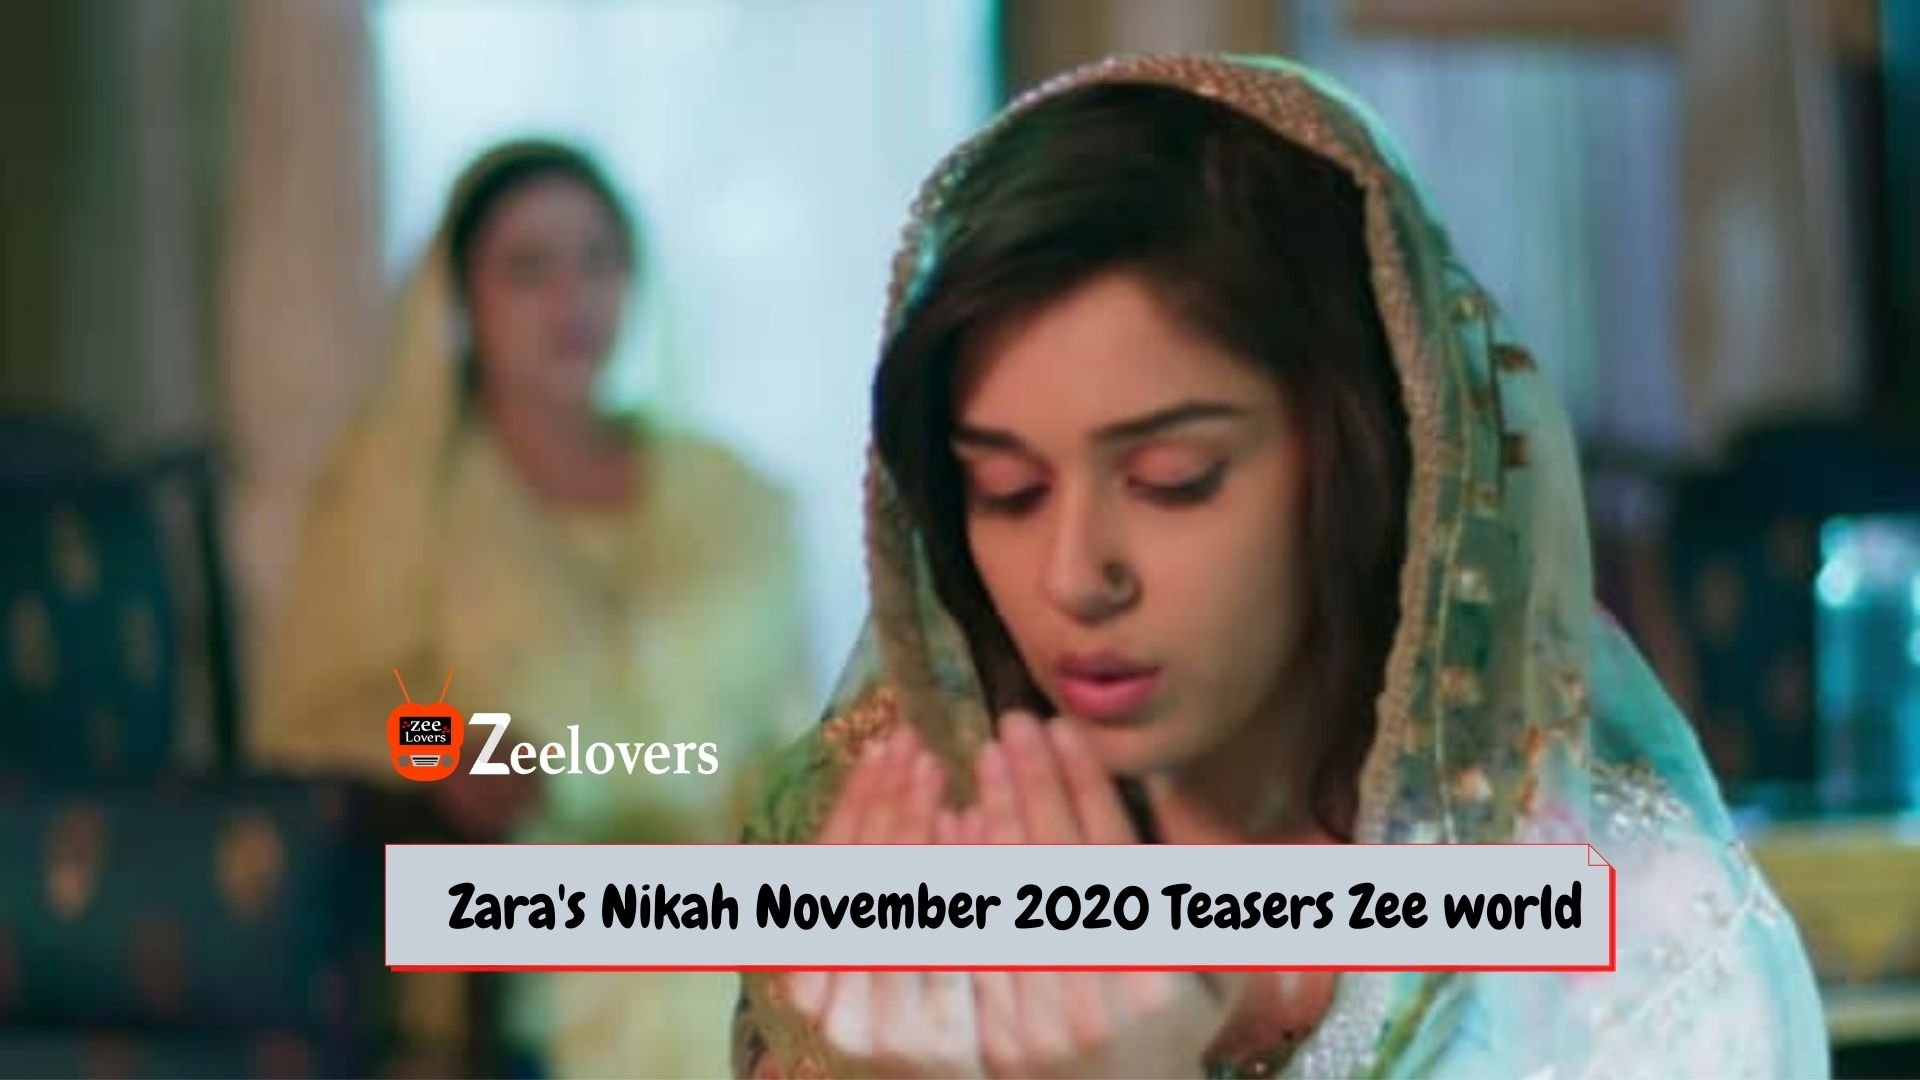 Zara's Nikah November 2020 Teasers Zee world